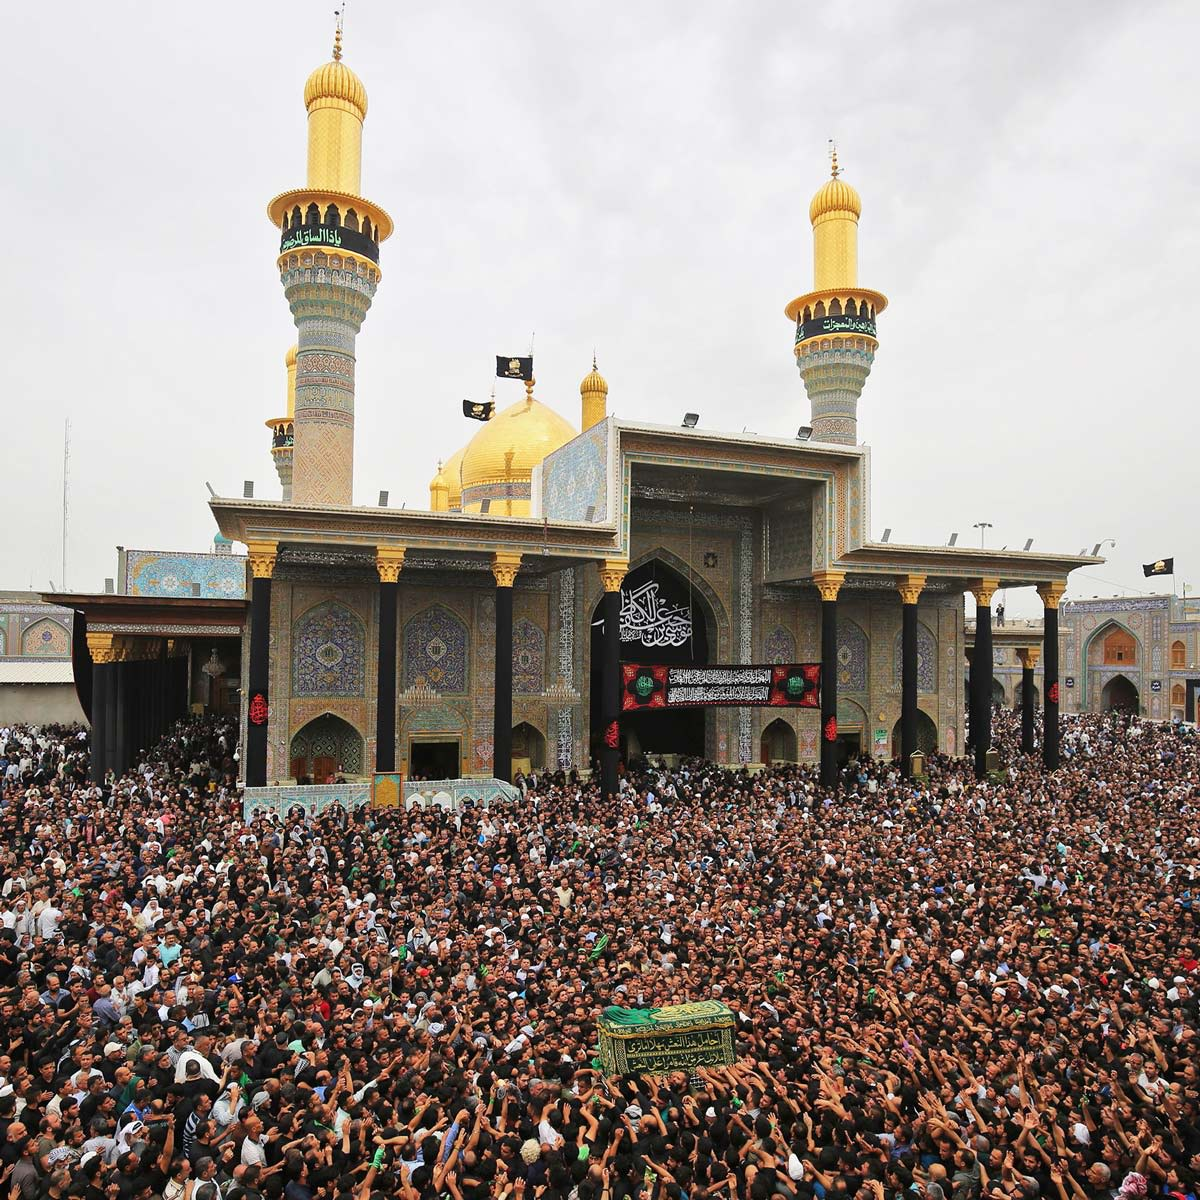 Shiite Muslim worshippers carry a symbolic casket as they gather at the Imam Moussa al-Kadhim's mosque in the Iraqi capital's northern district of Kadhimiya to mark the anniversary of the imam's death in the 8th Century.